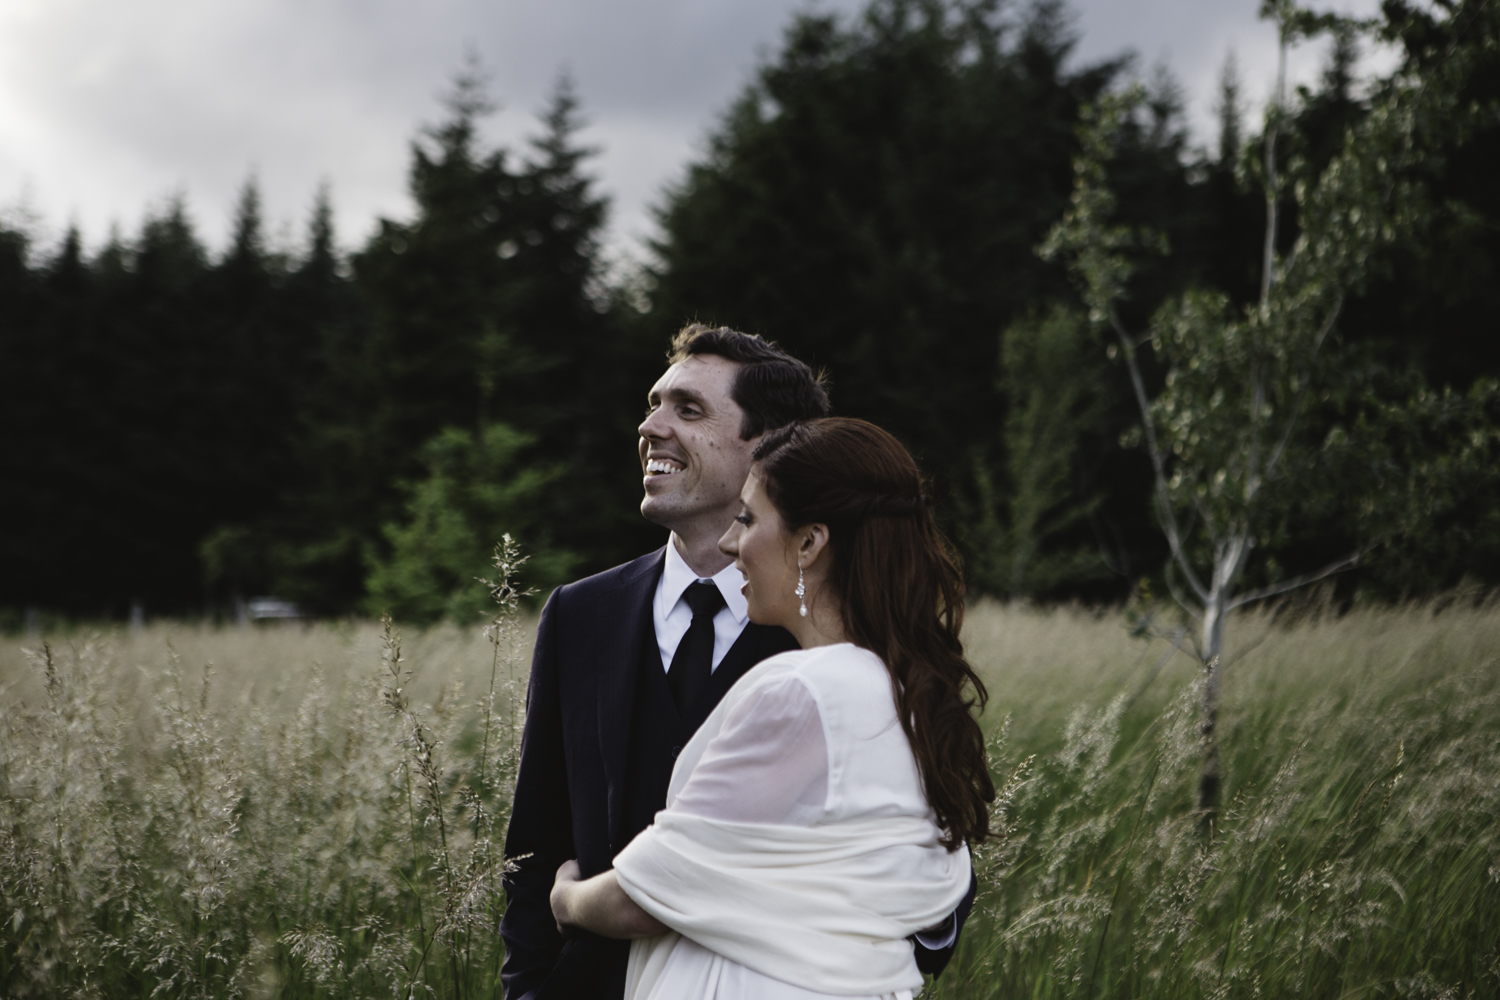 sarah-danielle-photography-intimate-wedding-photographer-254.jpg